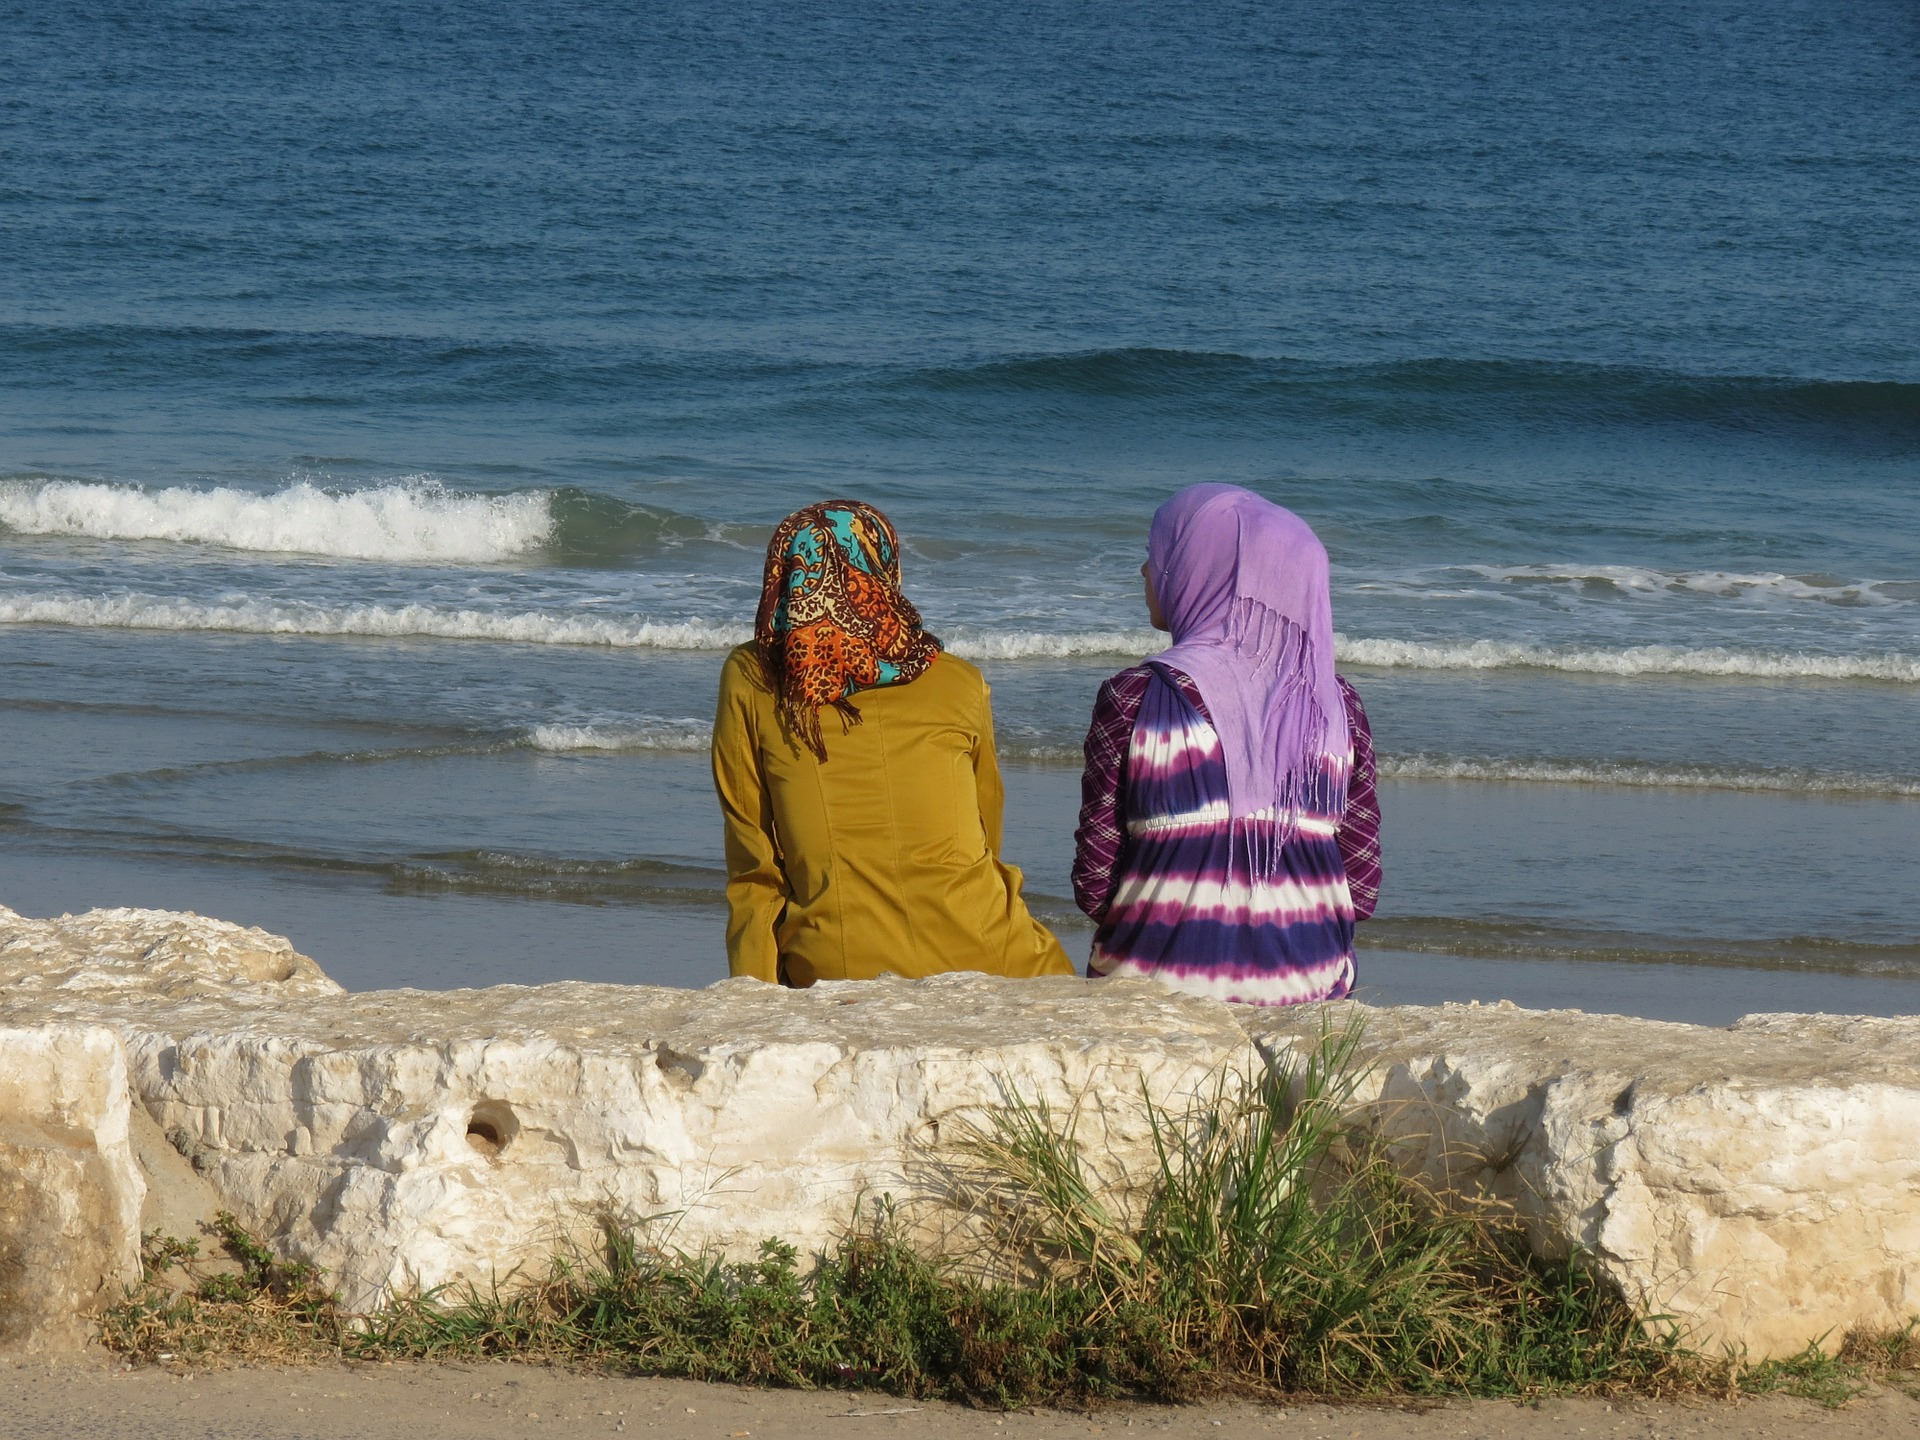 Women by the sea. Photo: Pixabay